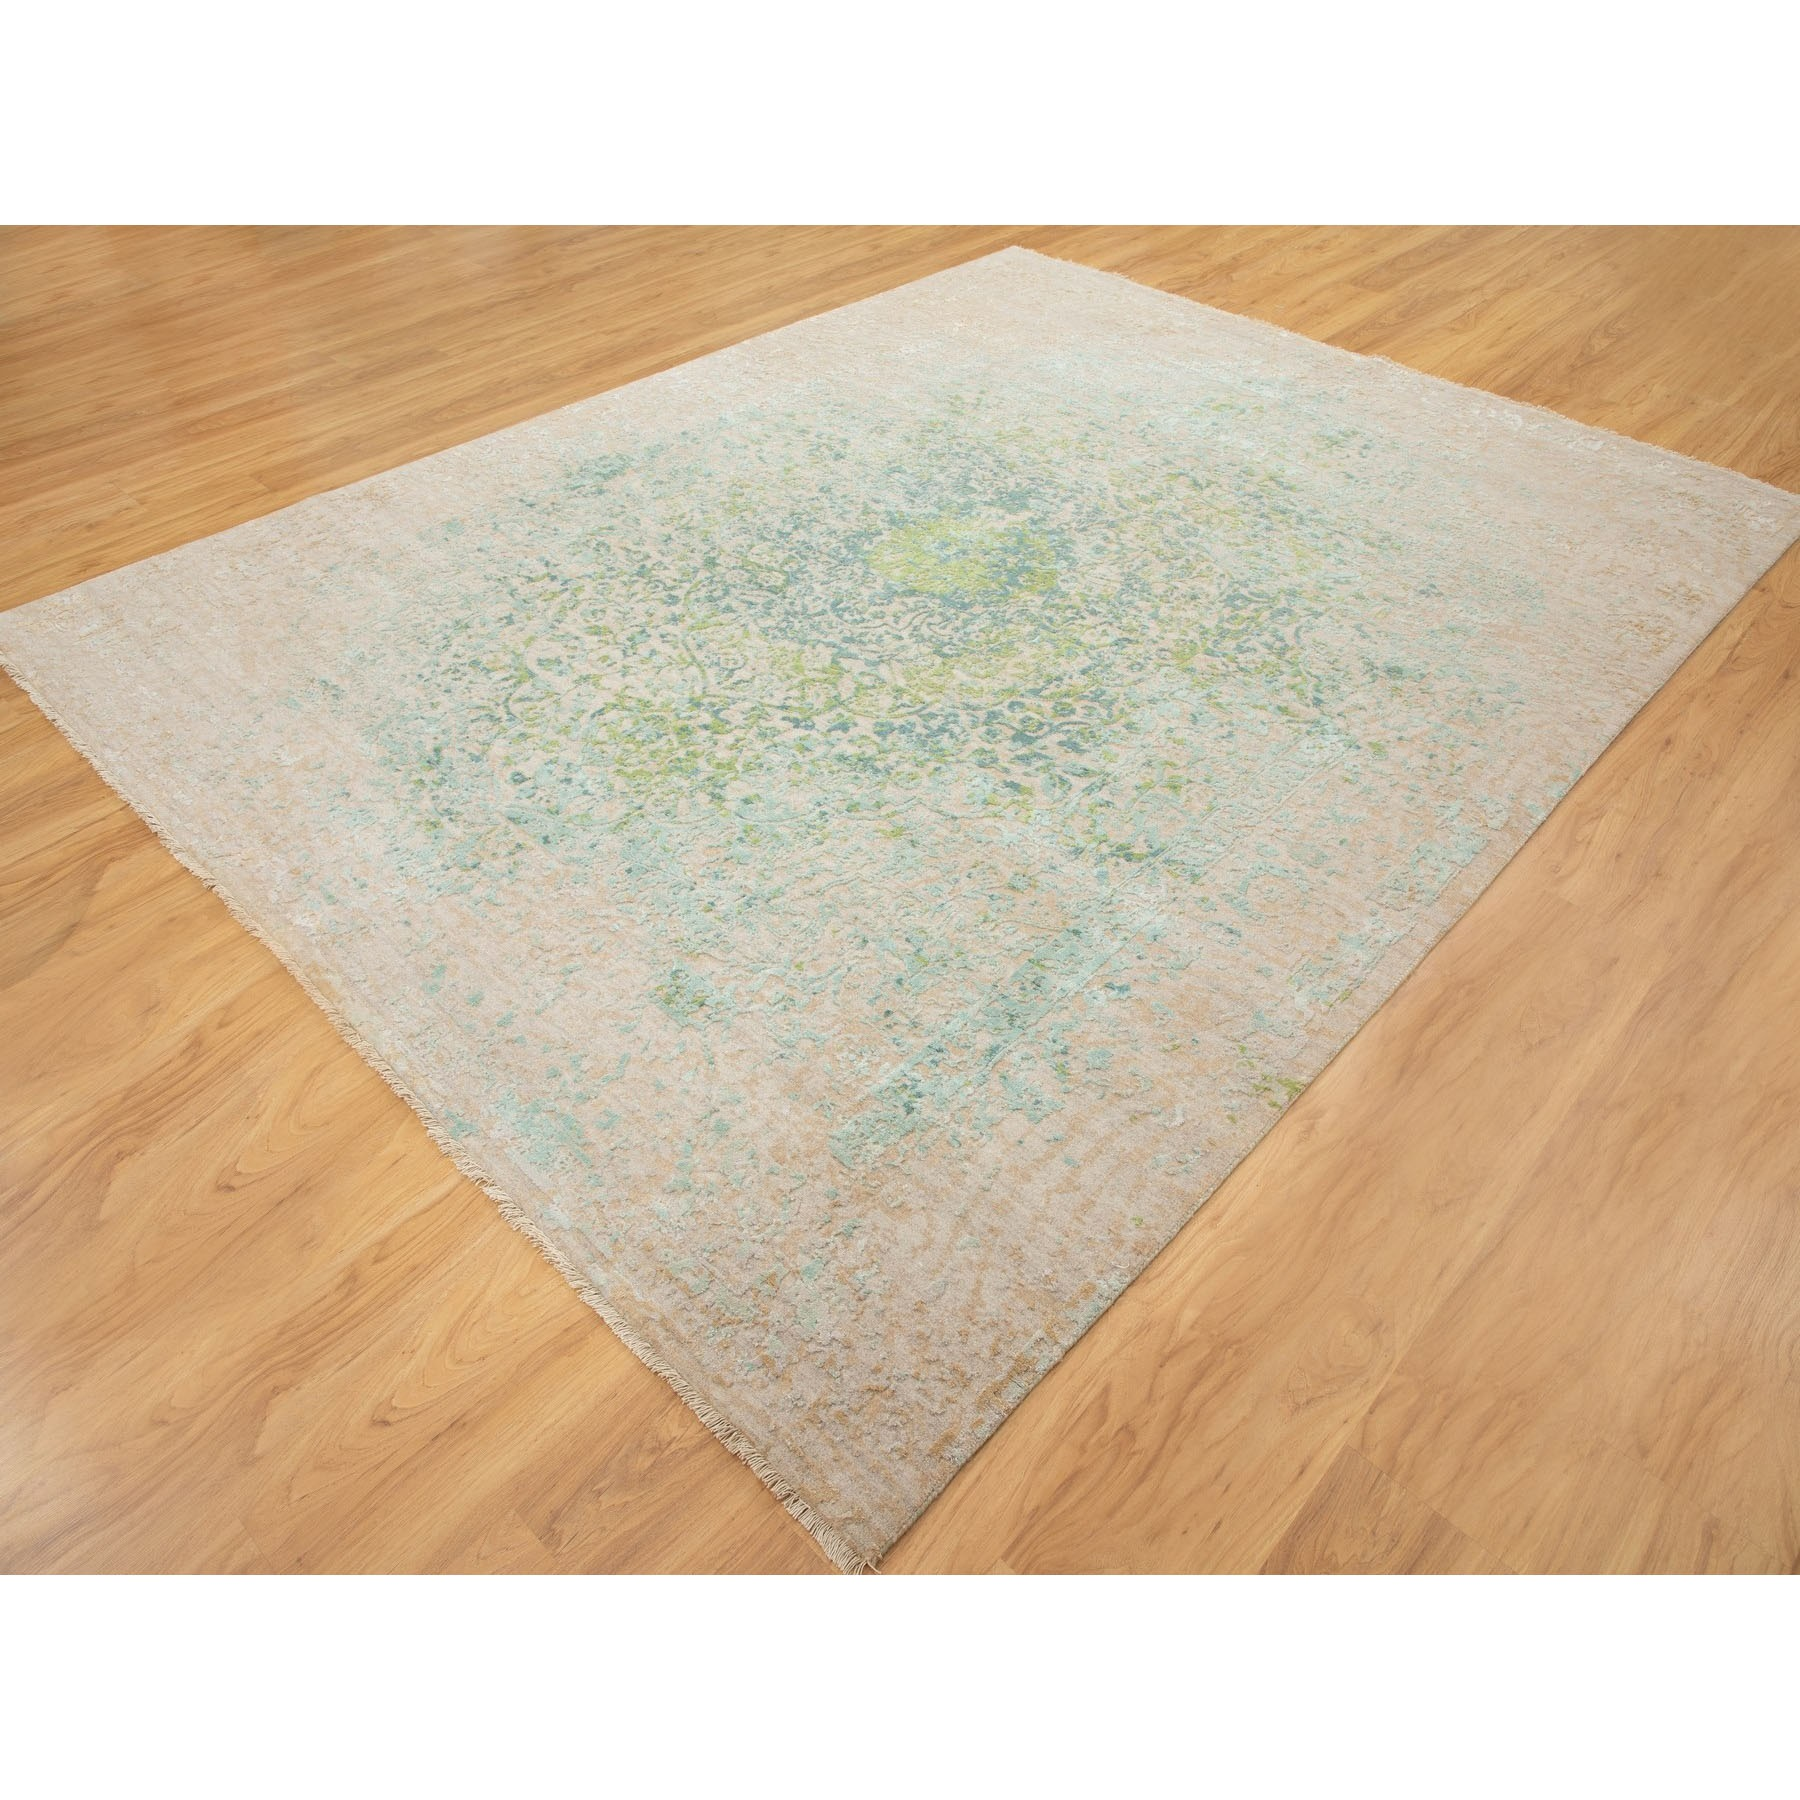 8'x10' Ivory Touch Of Green Pure Silk With Textured Wool Hand Knotted Oriental Rug